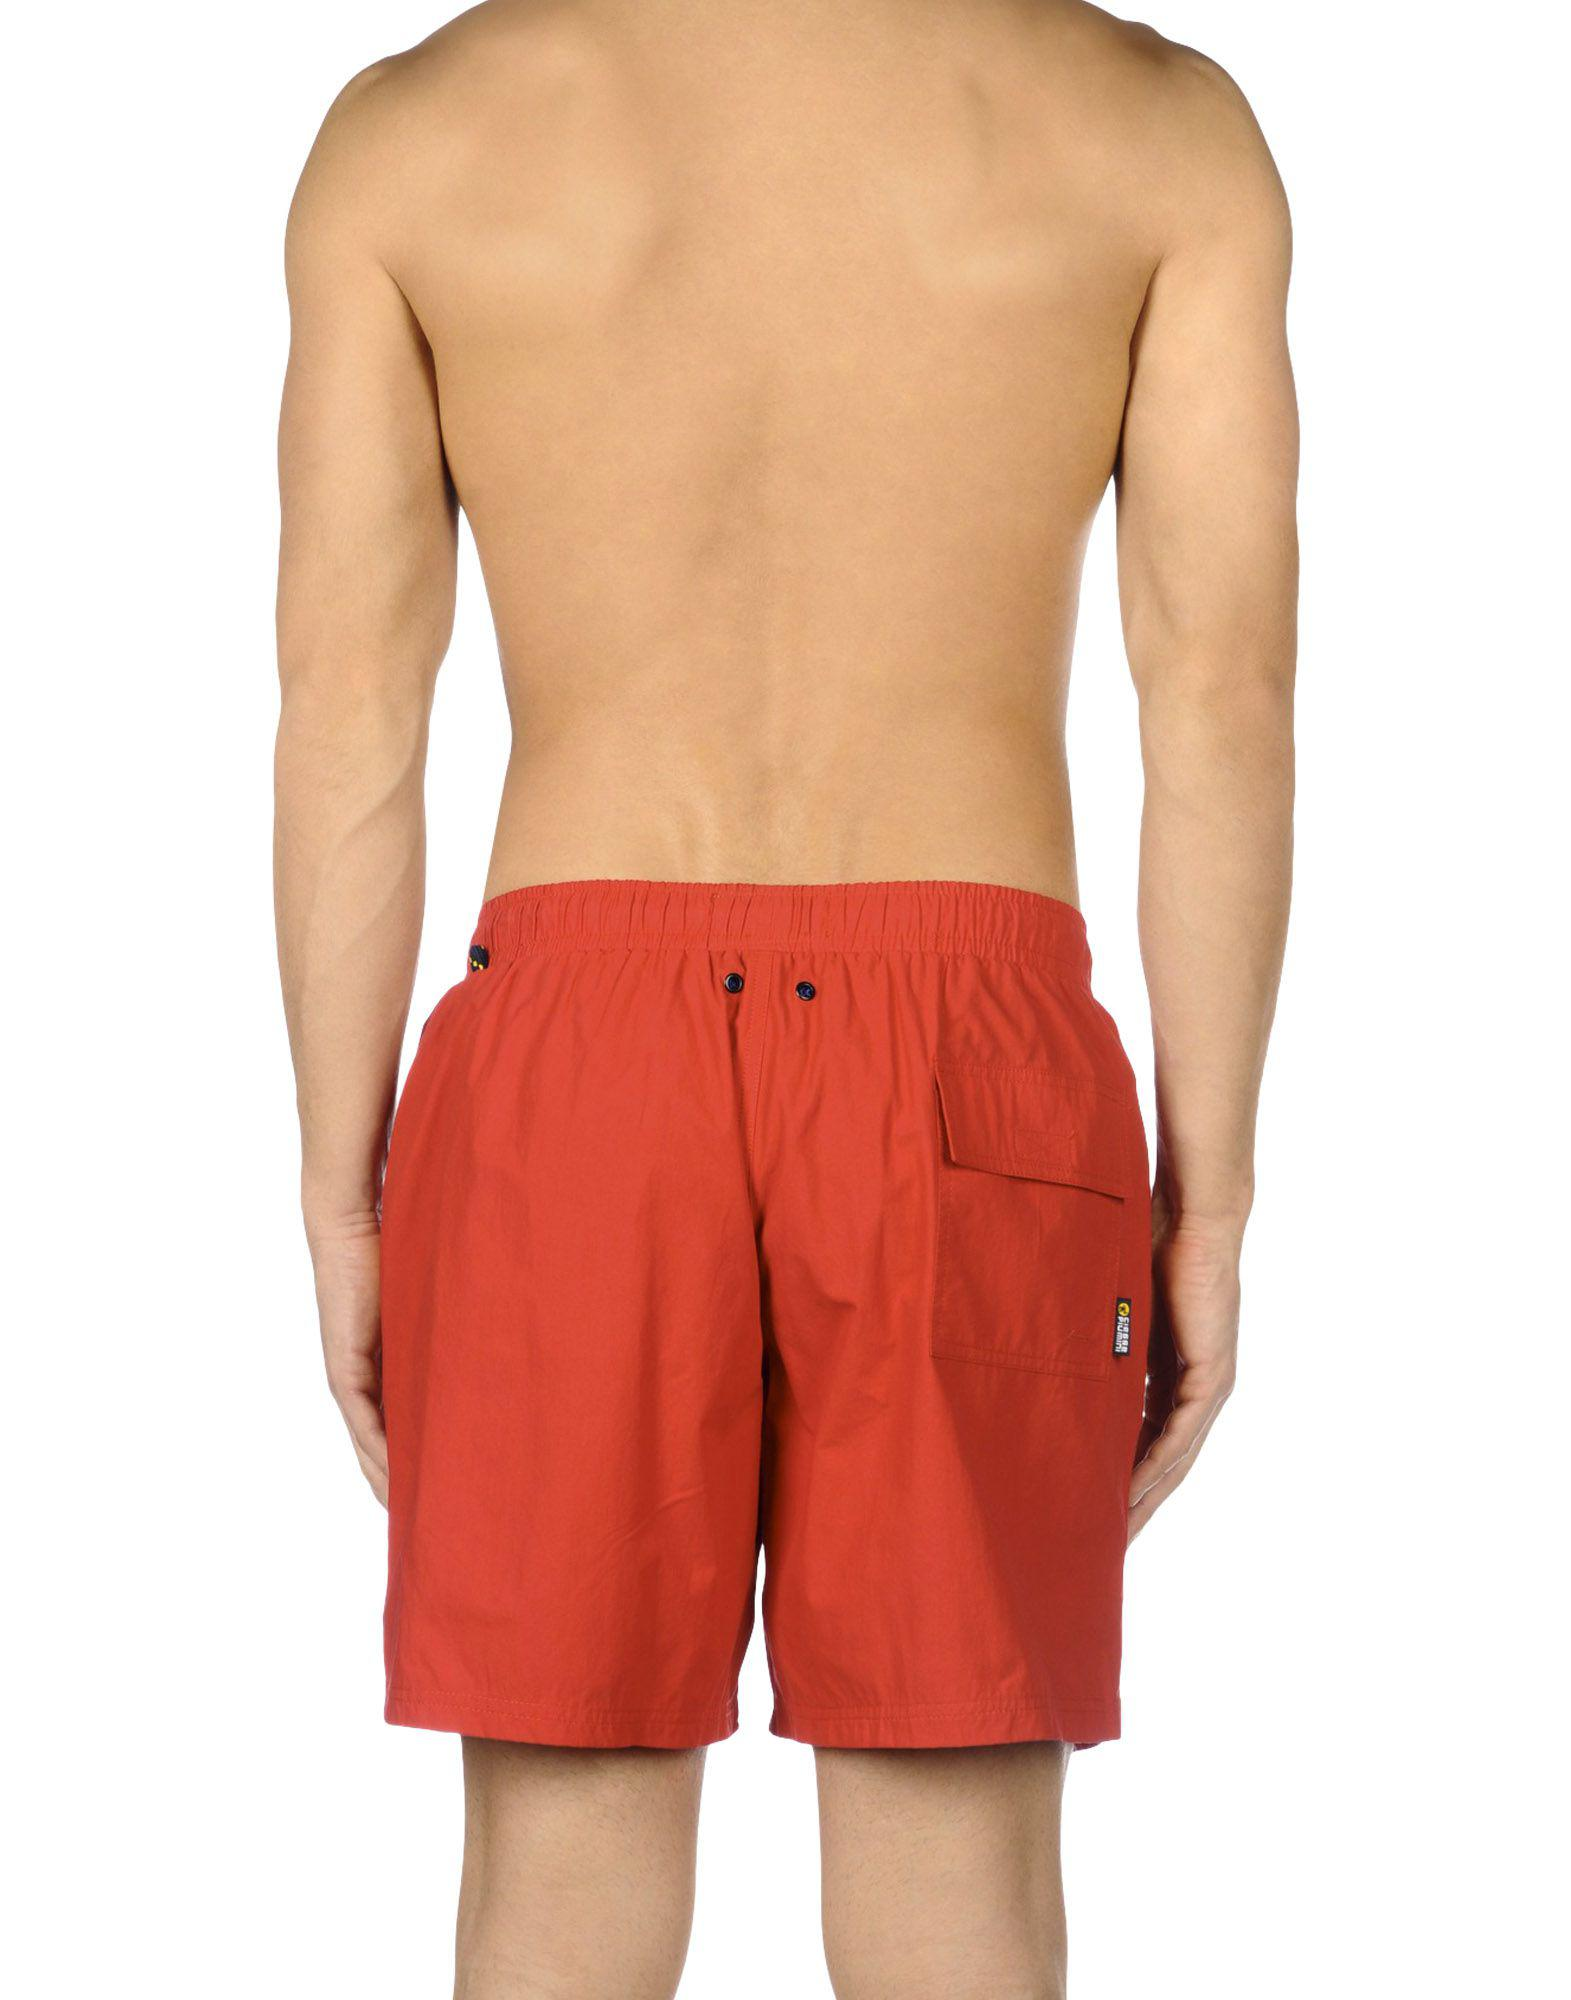 d0c0dc3fb8c10 Lyst - Ciesse Piumini Swimming Trunks in Red for Men